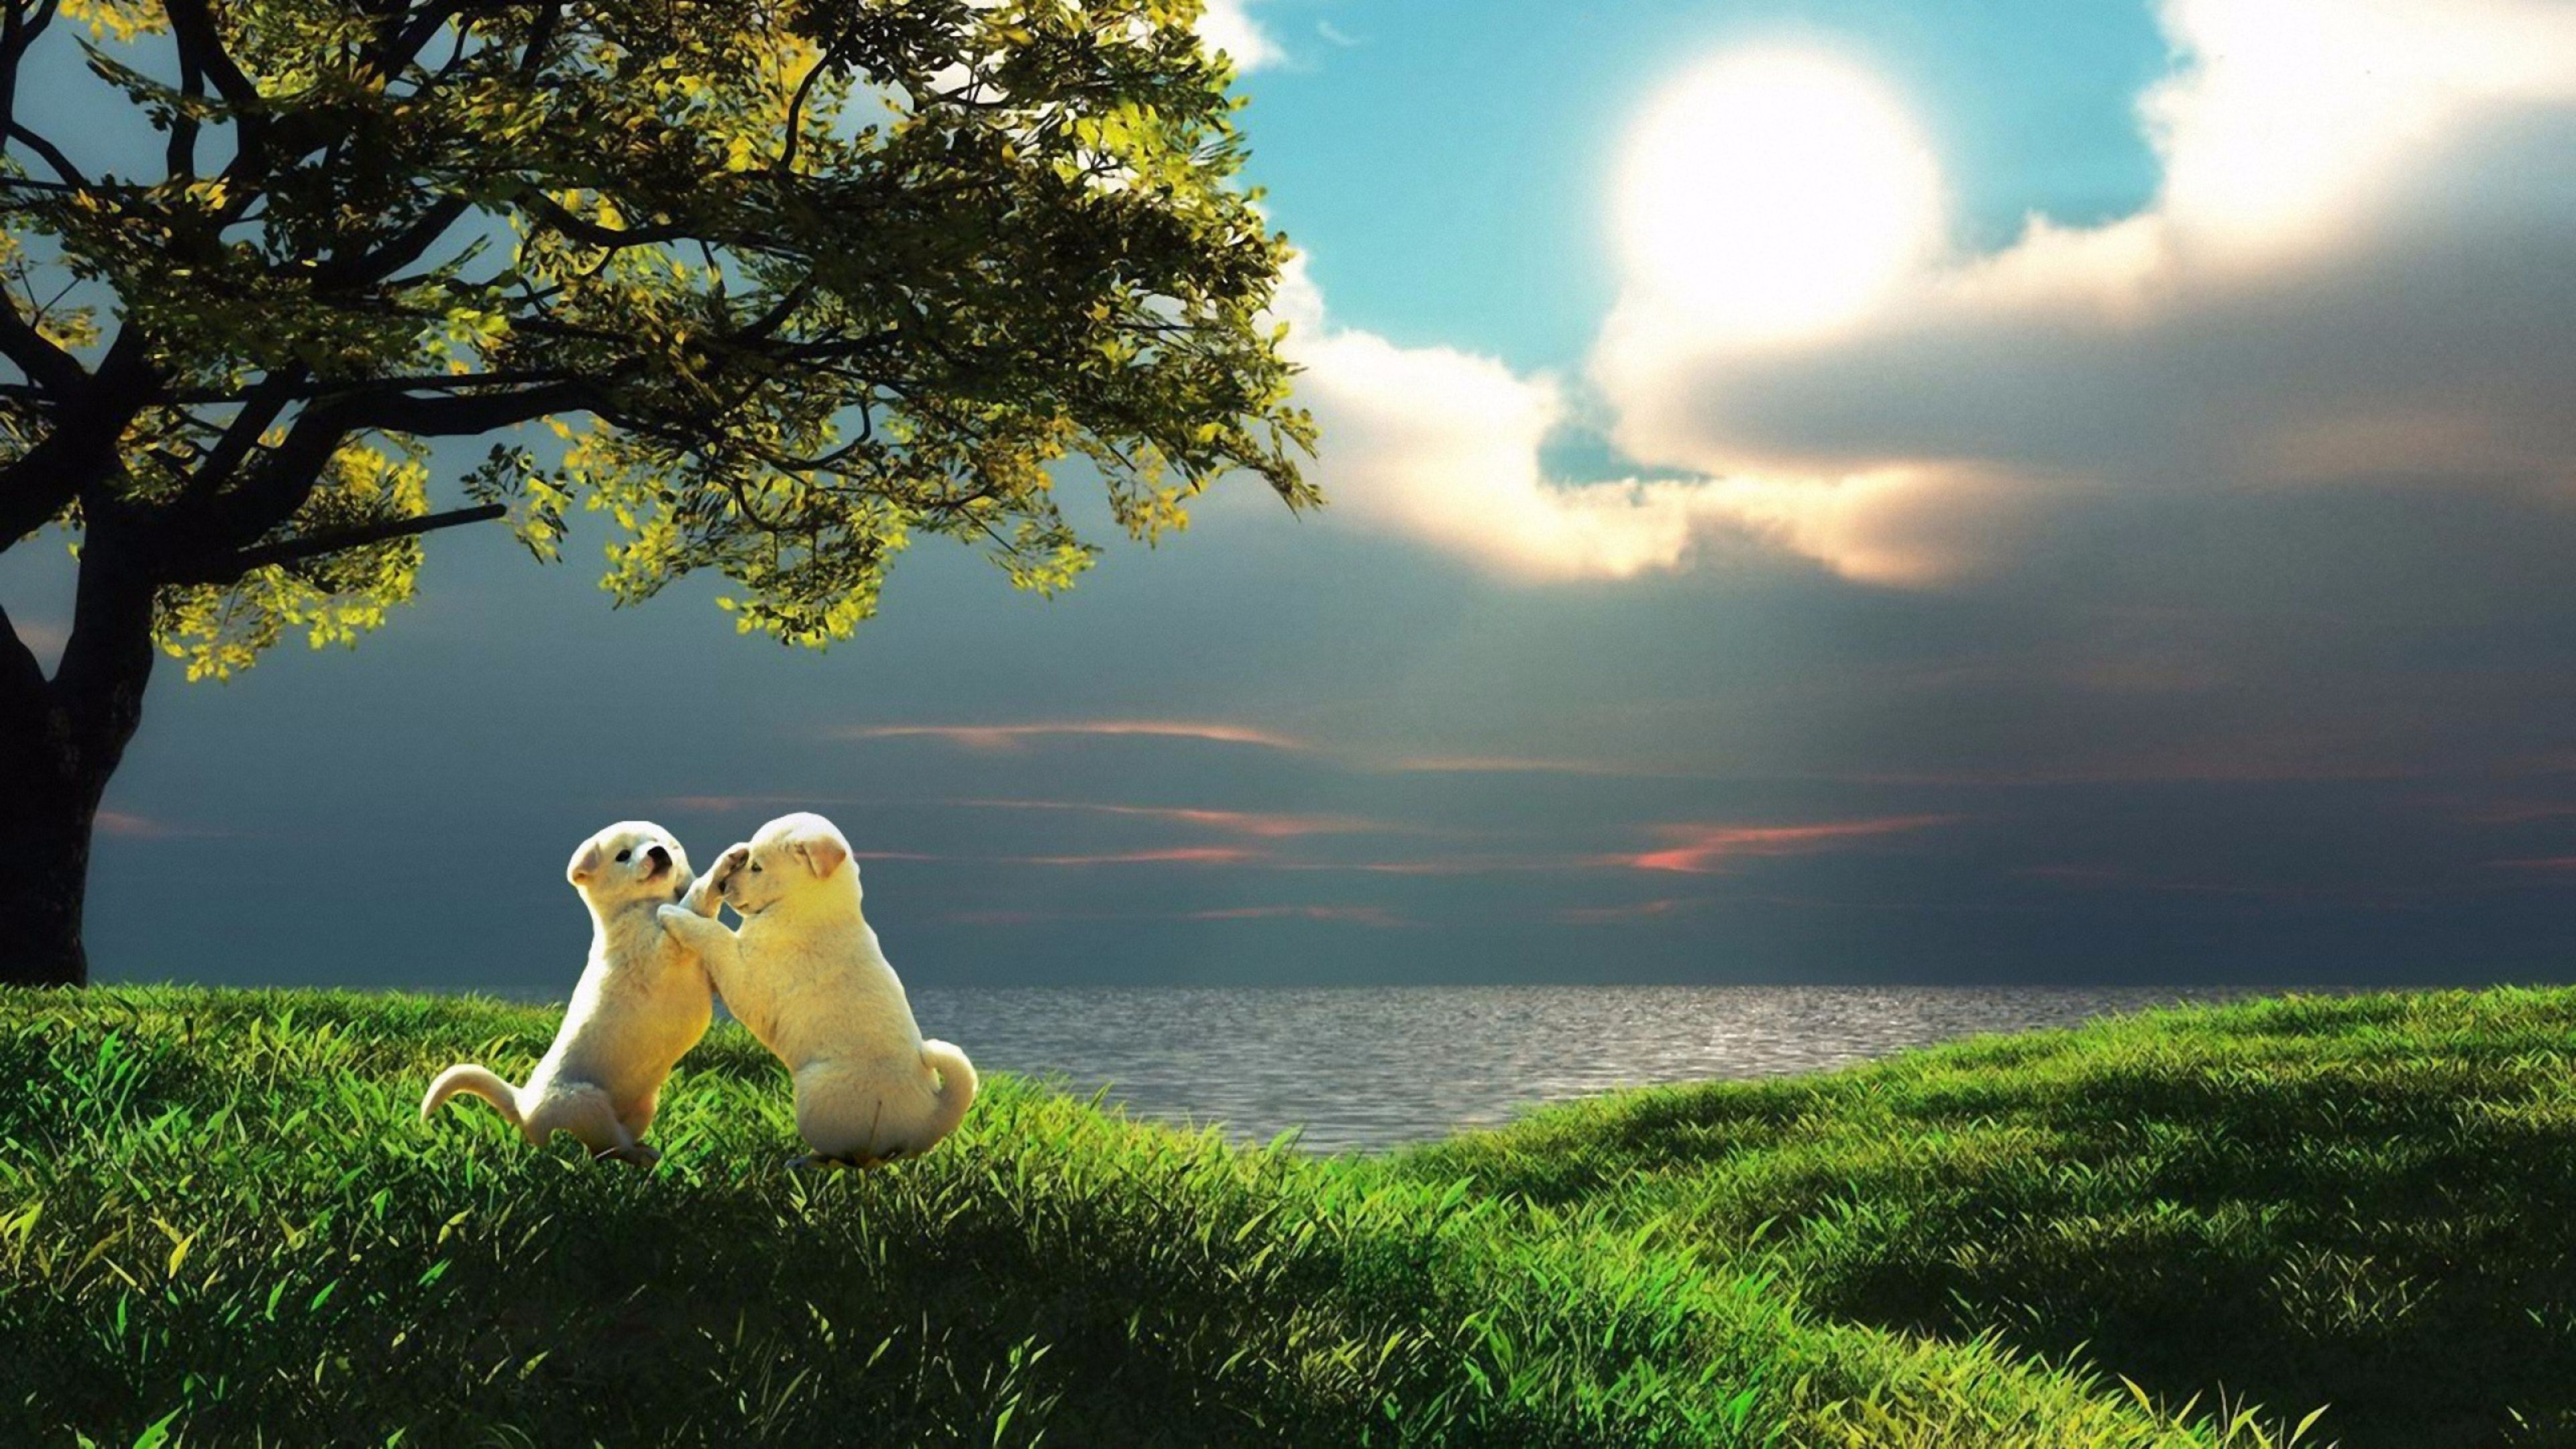 Cute Nature Wallpapers